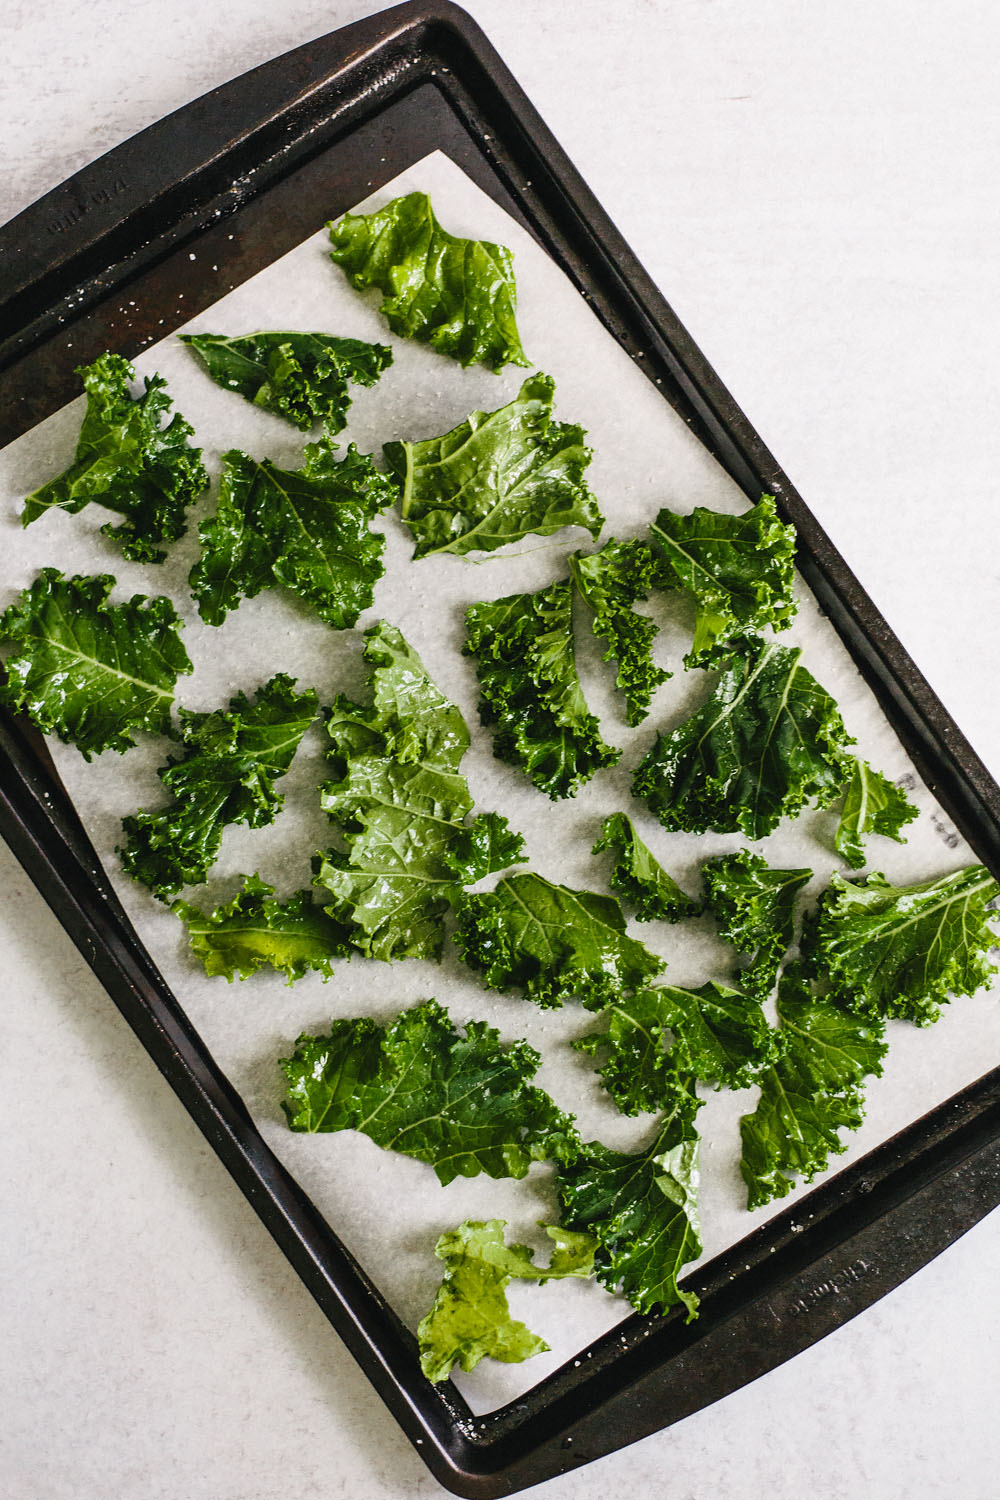 kale chips on a sheet